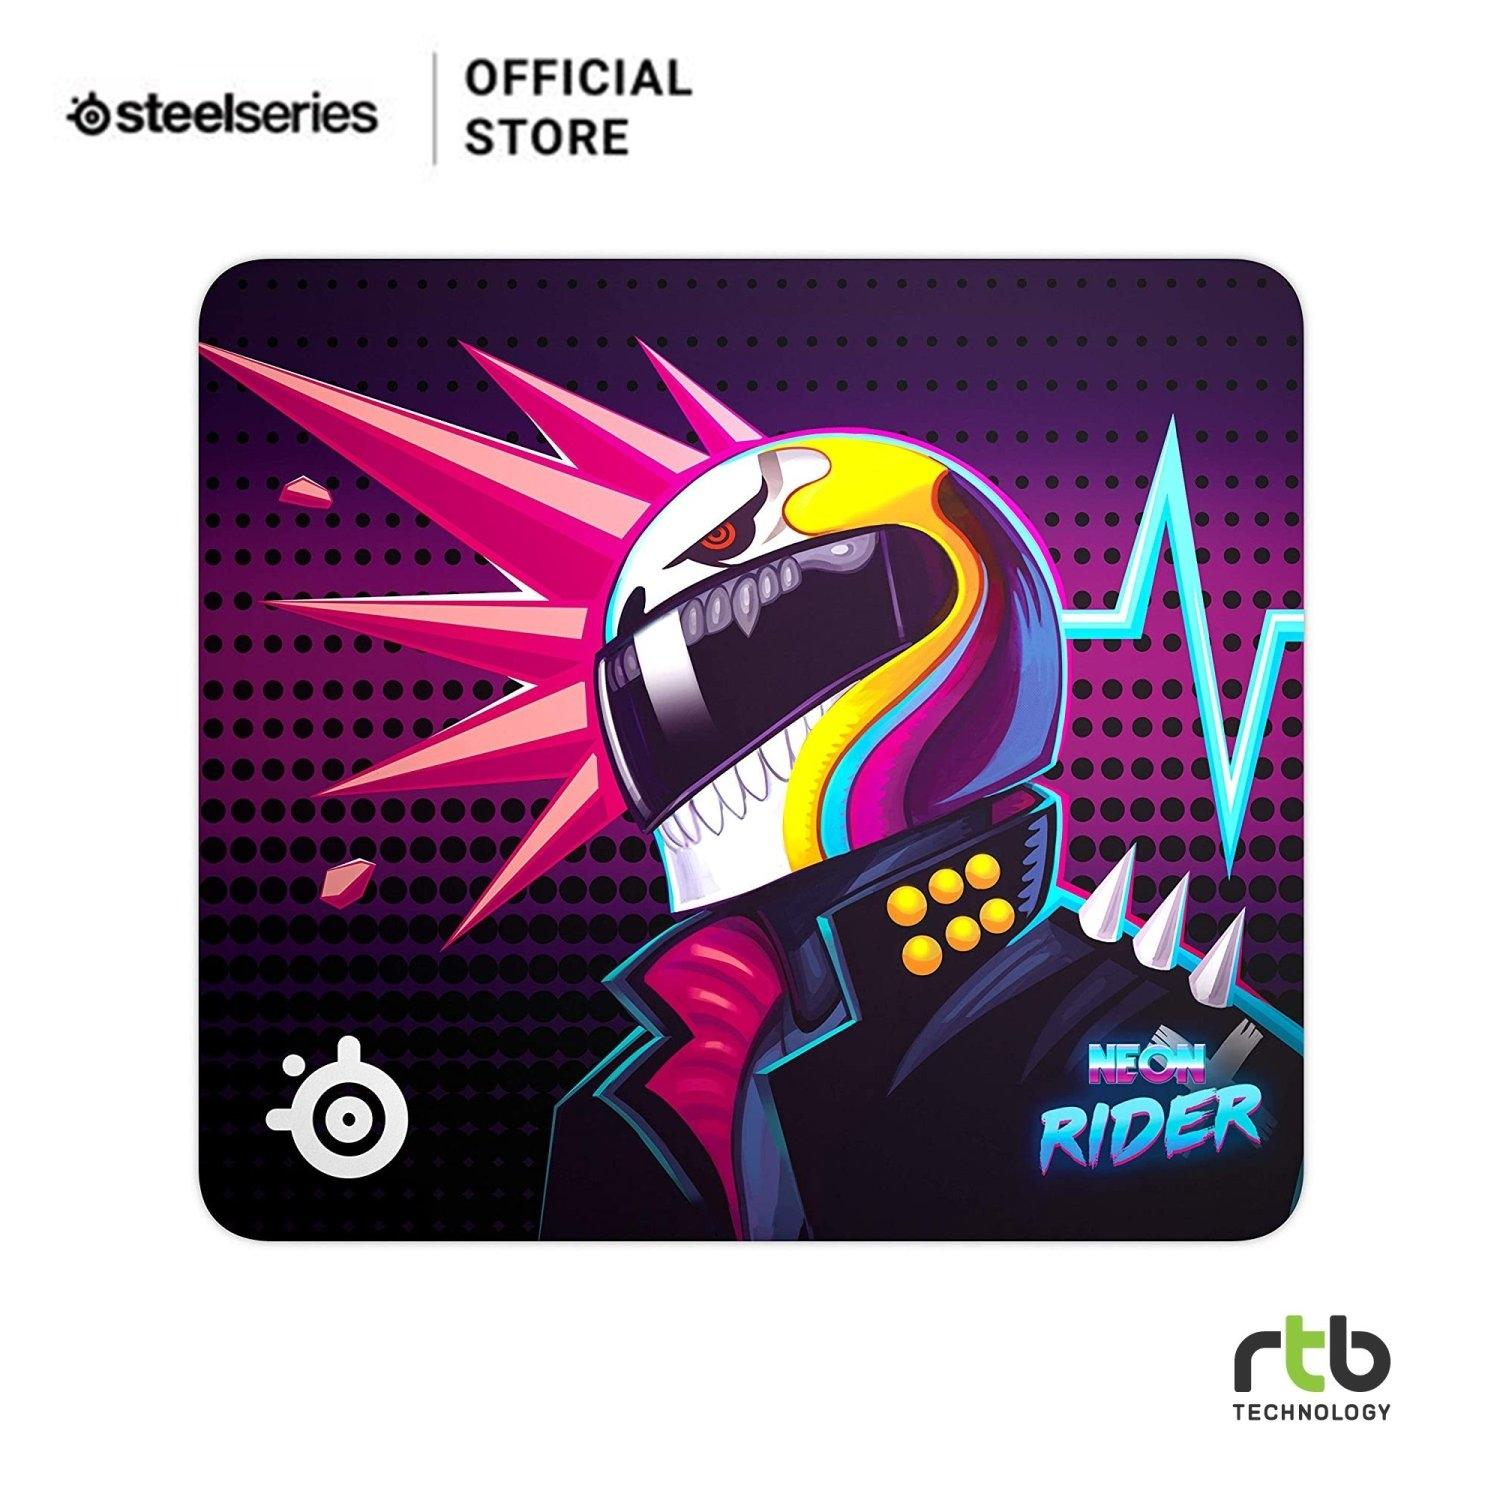 SteelSeries แผ่นรองเมาส์ รุ่น QcK Large Neon Rider Edition Cloth Gaming Mouse Pad - Size L